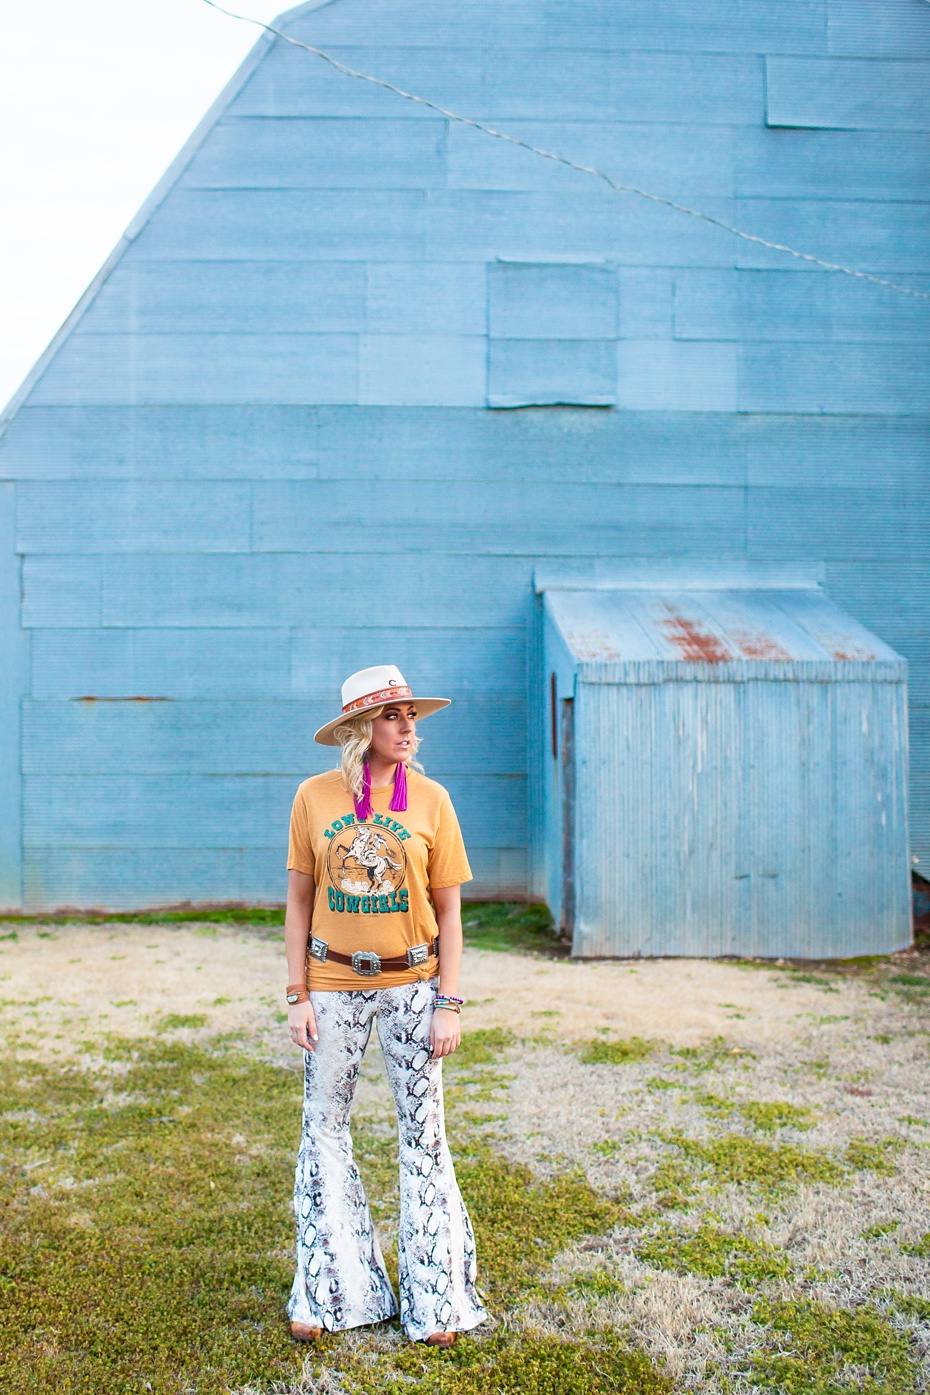 Graphic tee, concho belt and snakeskin bell bottom pants are from  Baha Ranch Western Wear   Fringe earrings are from  Saddle Tramp Brand   Felt highway hat is from  Charlie 1 Horse  and the hat band is from  Nifty Gypsy Originals